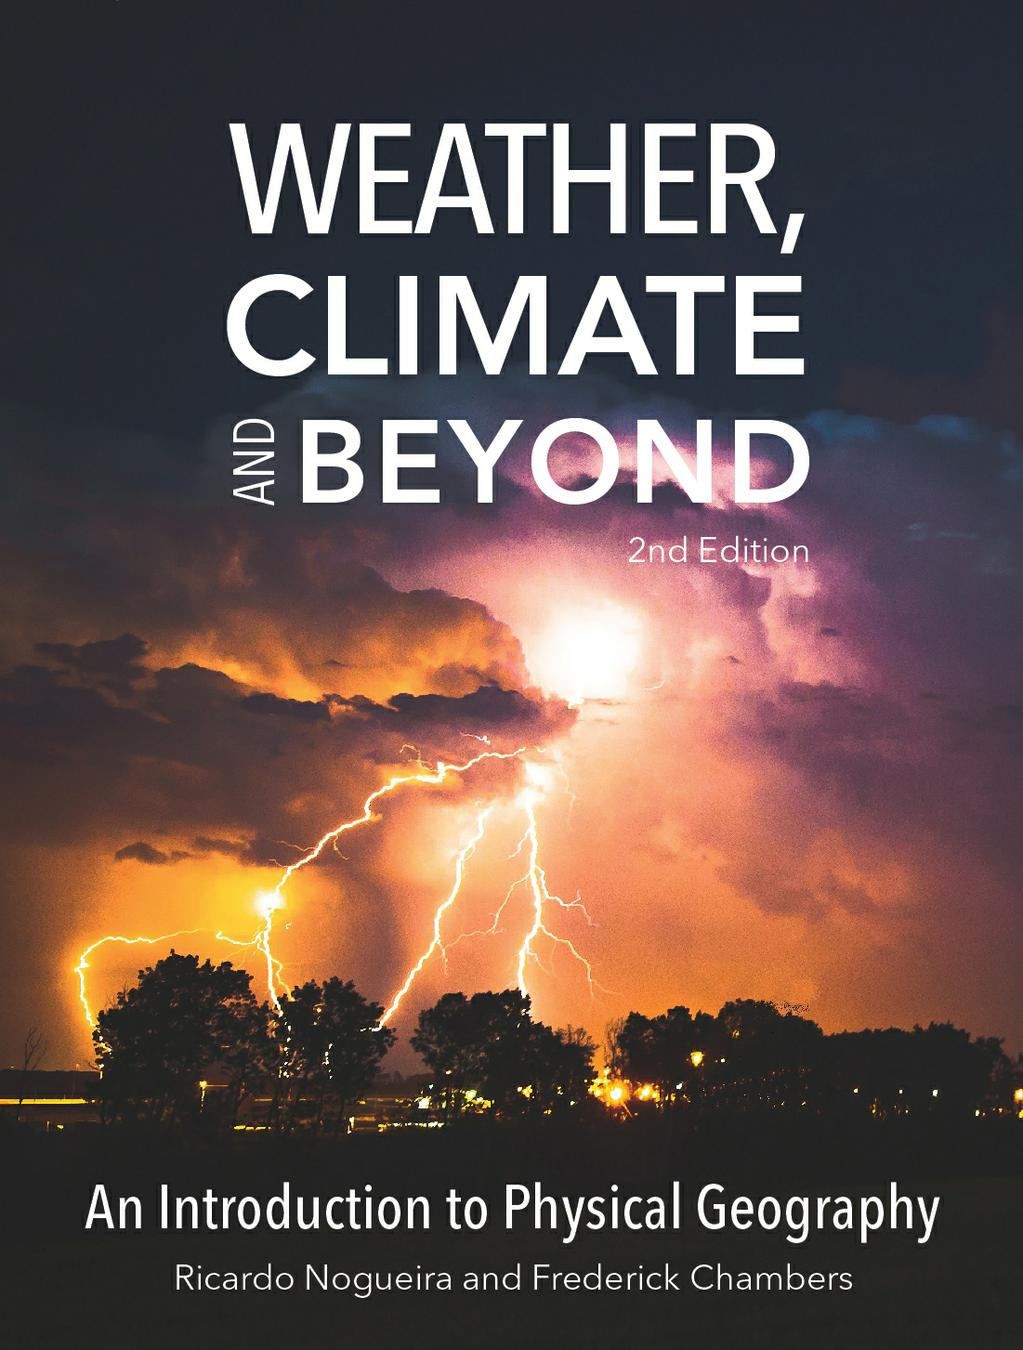 Weather, Climate, and Beyond: An Introduction to Physical Geography, Second Edition